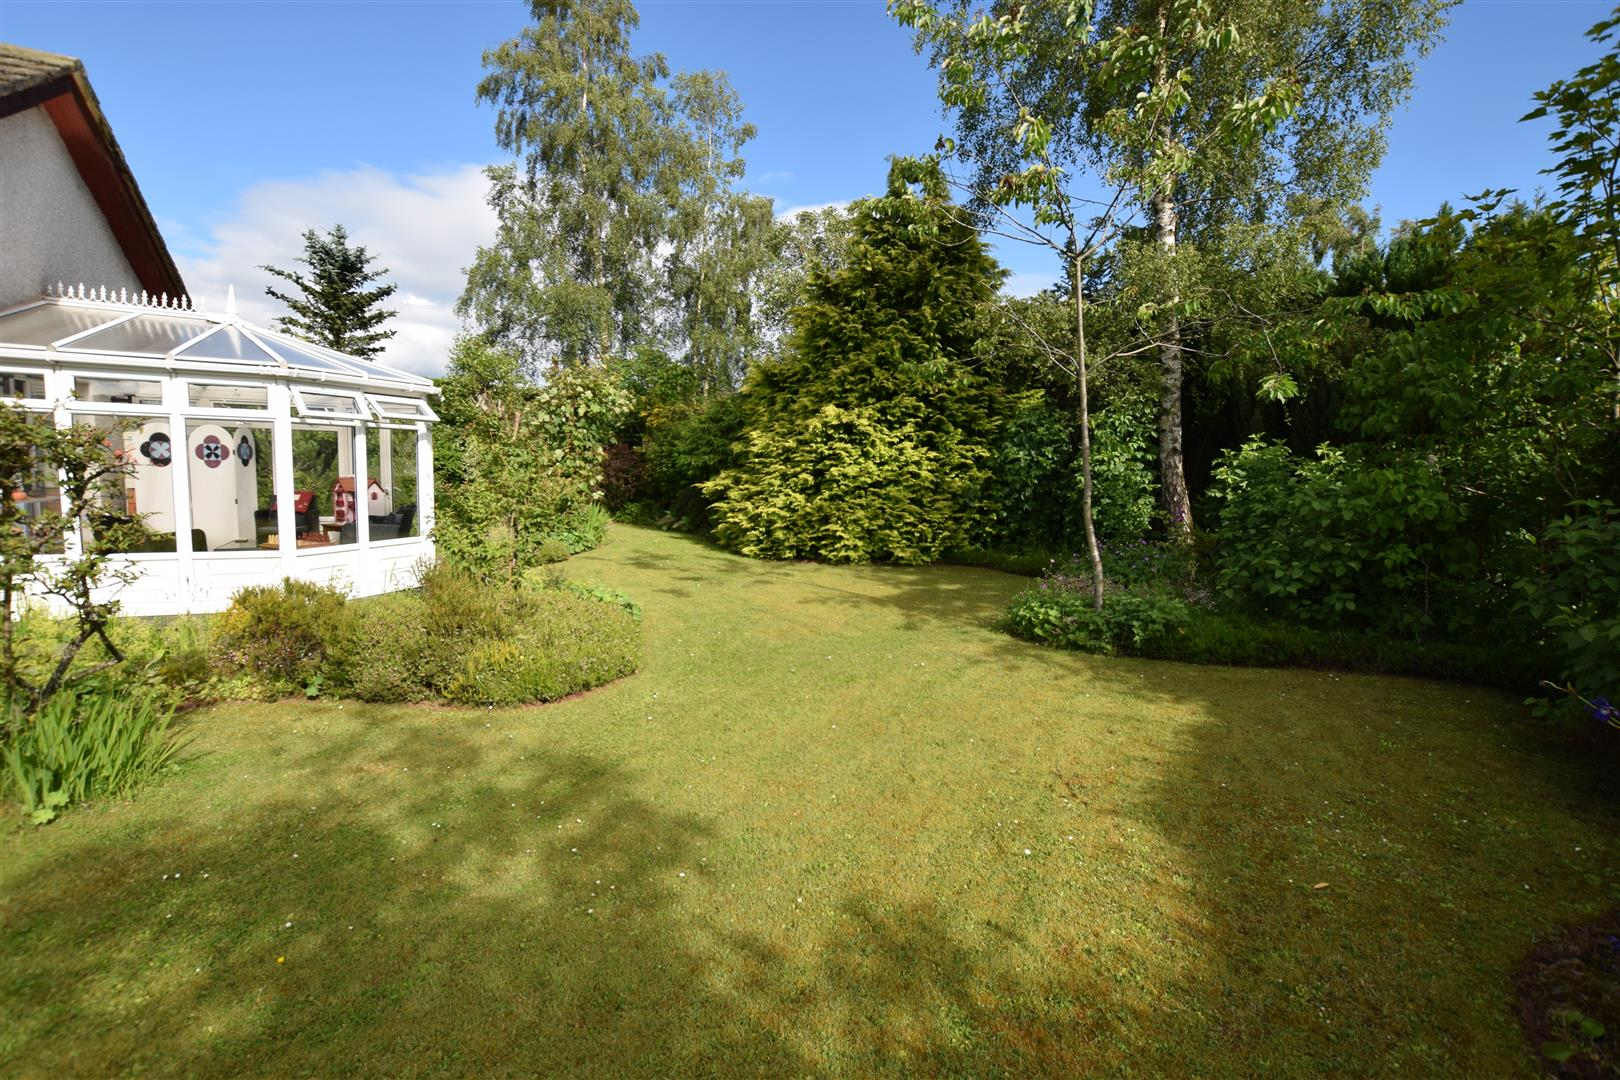 6, Fraser Avenue, Wolfhill, Wolfhill Perth, Perthshire, PH2 6DG, UK